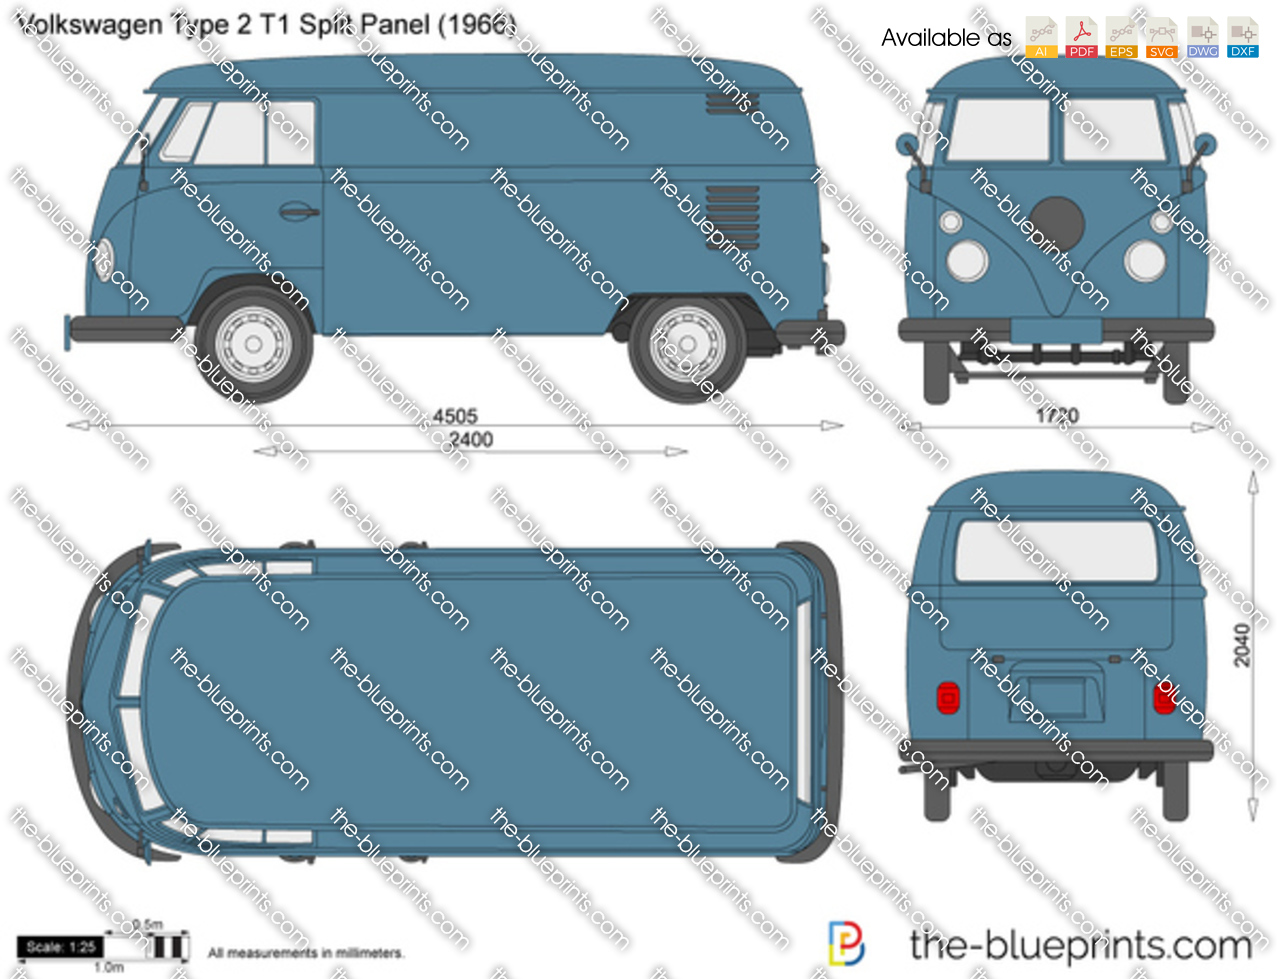 1953 Volkswagen Type 2 T1 Split Panel